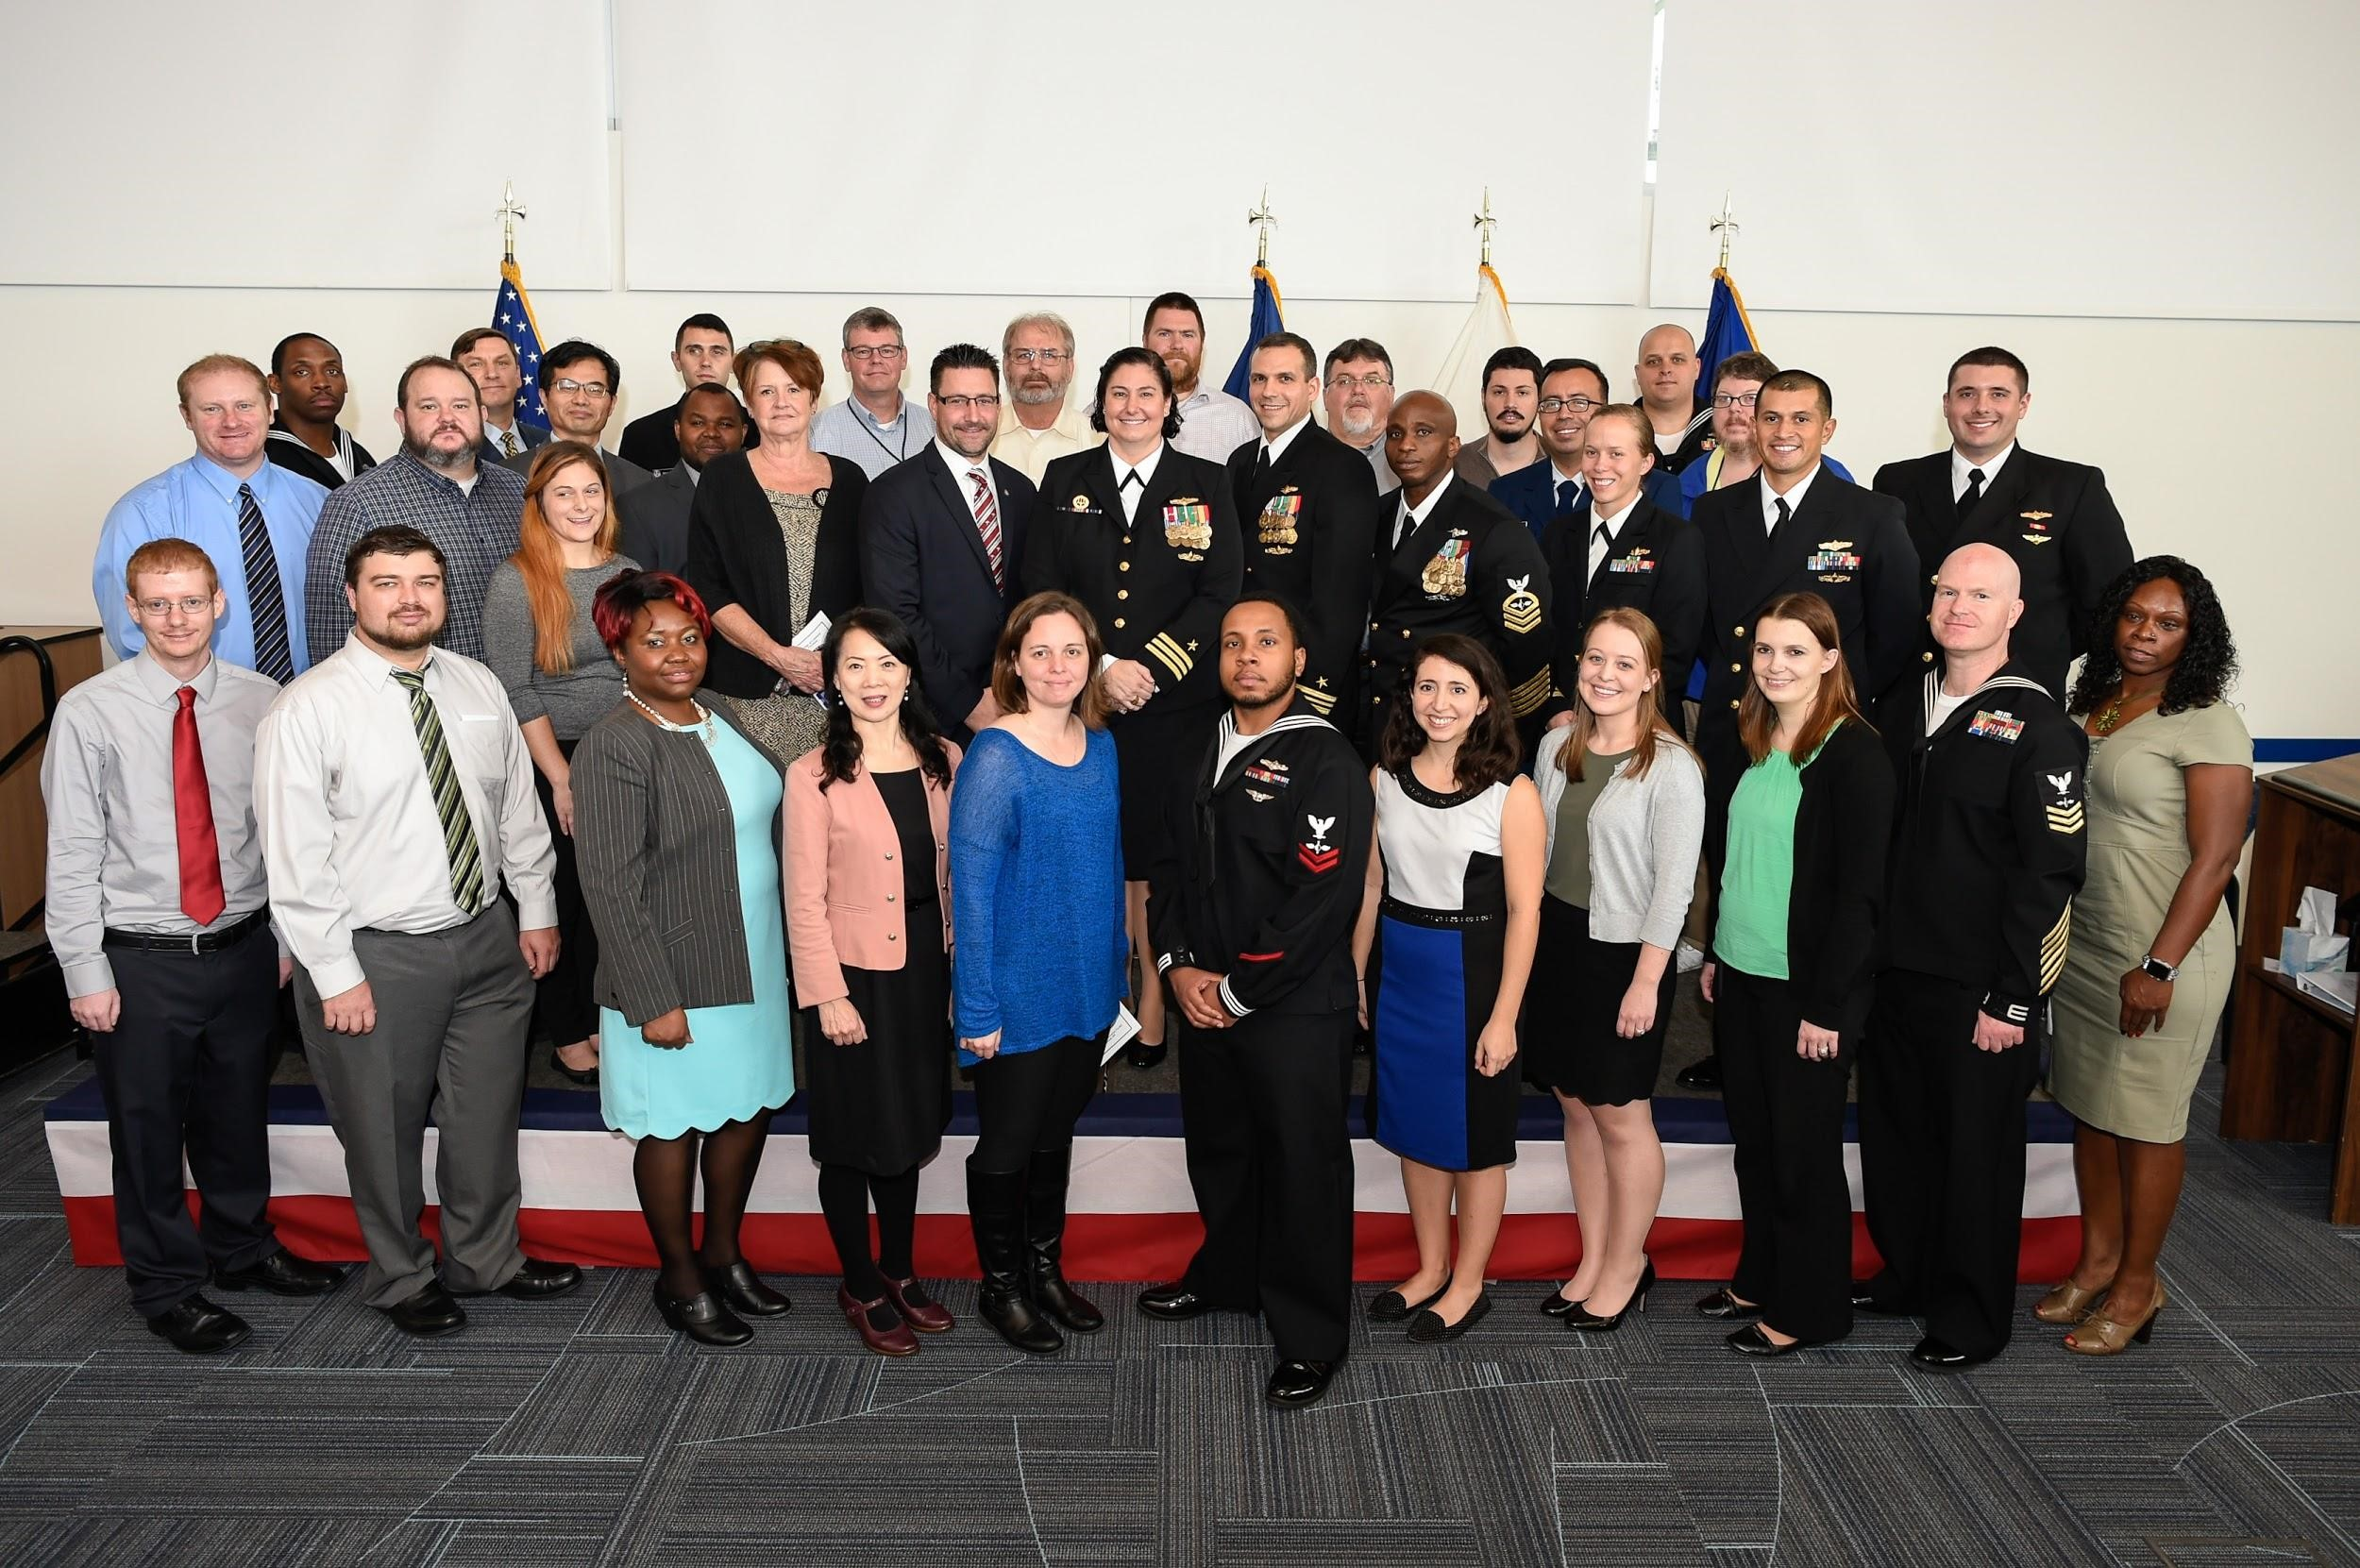 Photo of U.S. National Ice Center (USNIC) personnel captured on November 2, 2018  following the change of command ceremony at the NOAA Satellite Operations Facility. Cmdr. Heather Quilenderino, U.S. Navy (center) is the Director of the tri-agency USNIC and is flanked by Deputy Director (NOAA) Mr. Kevin Berberich (left) and Executive Officer Lt. Cmdr. Joshua Khoury, USN (right).